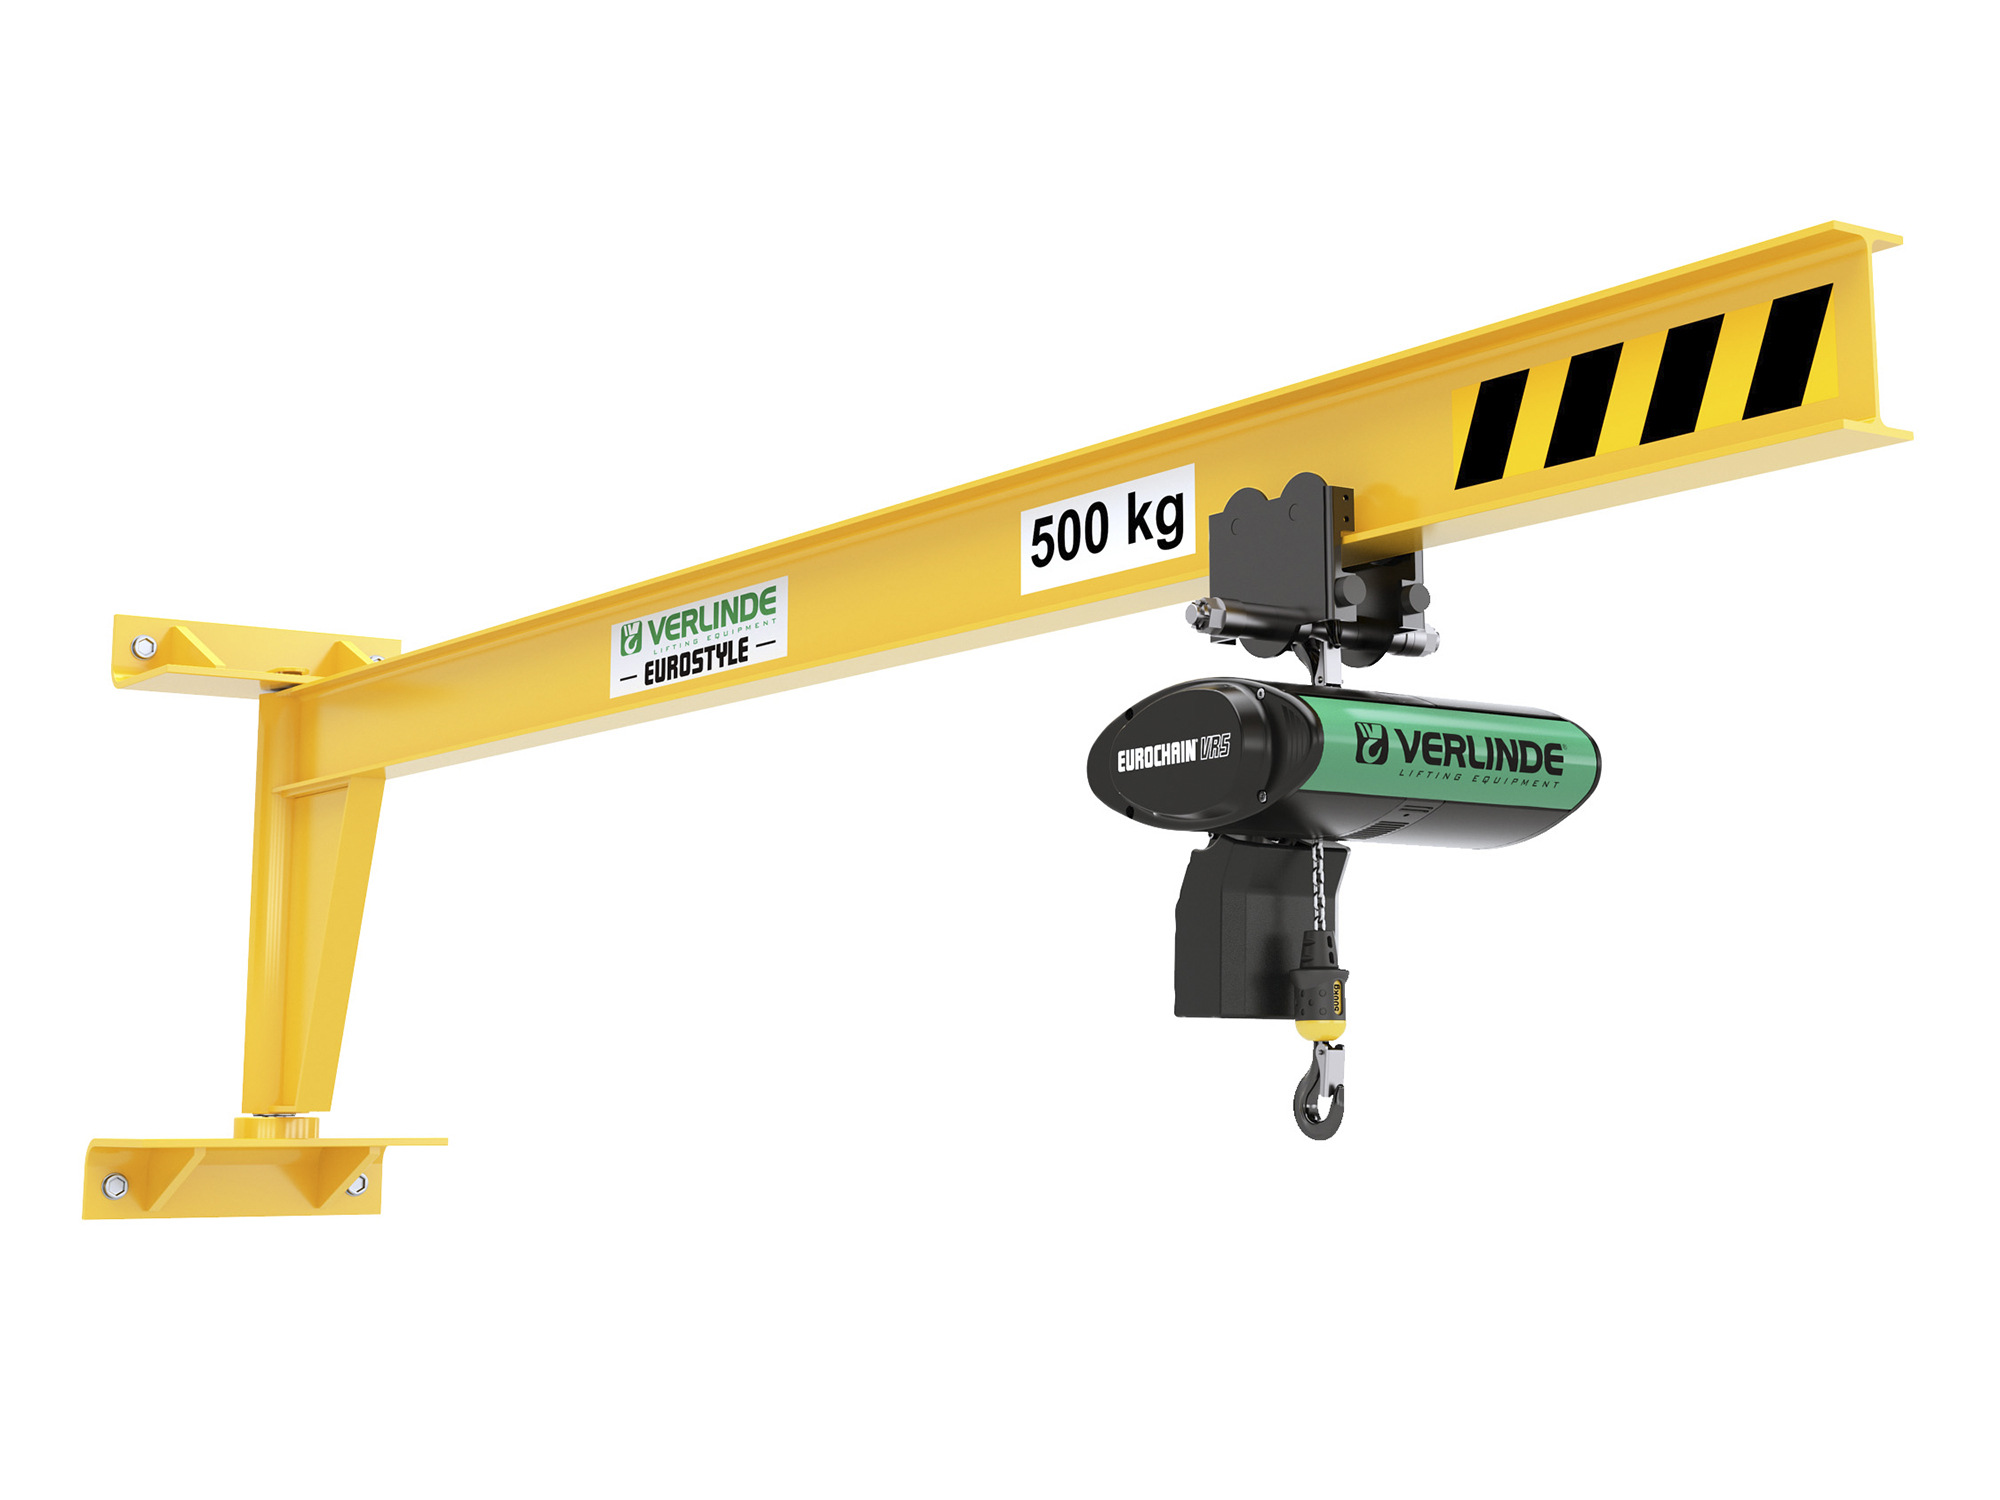 Wall Mounted Underbraced Jib Crane from Verlinde